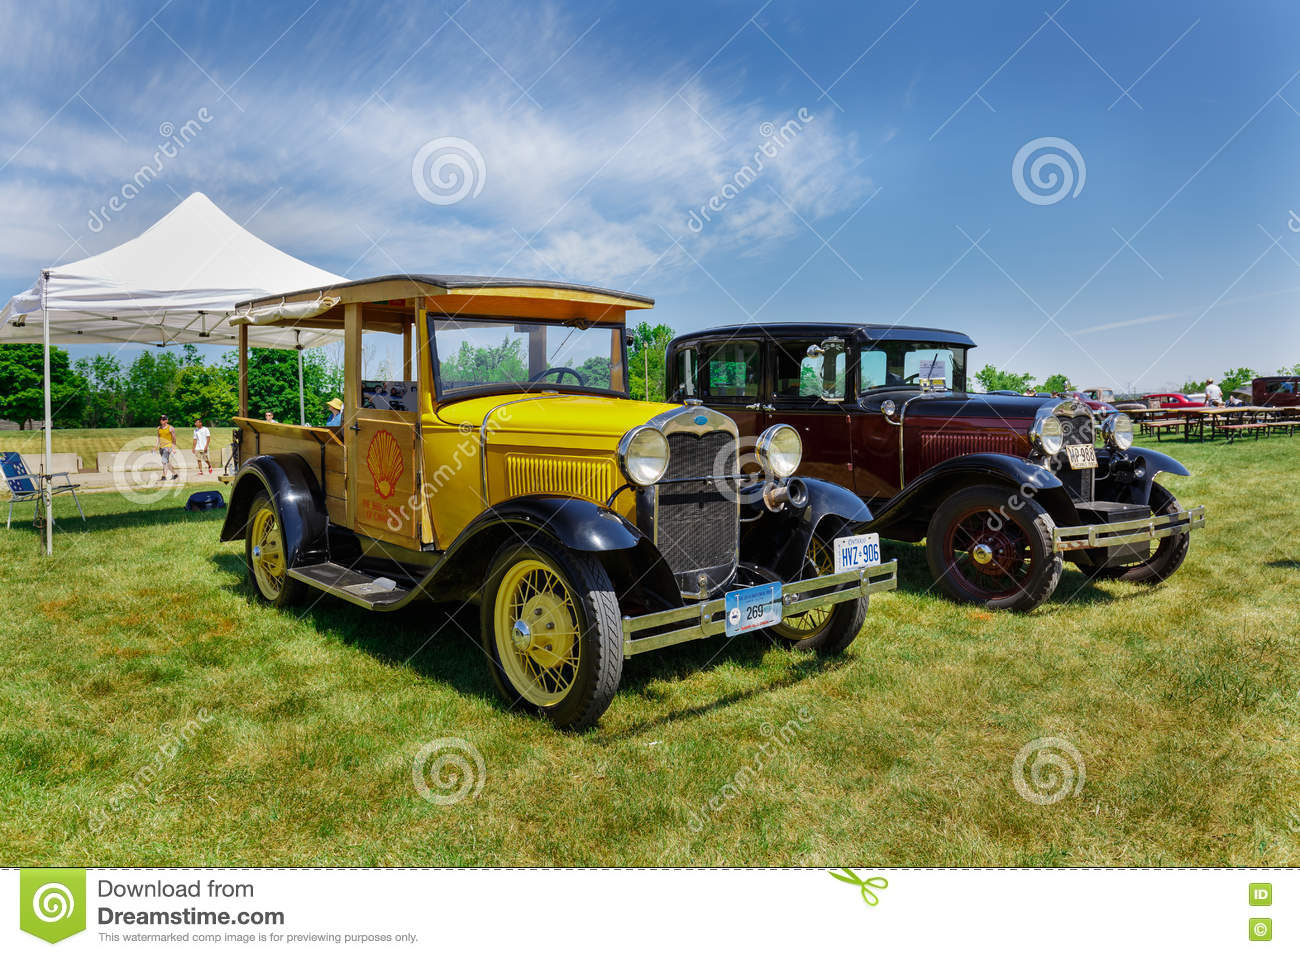 Nice Amazing Front View Of Classic Vintage Cars With People In - Classic cars nice